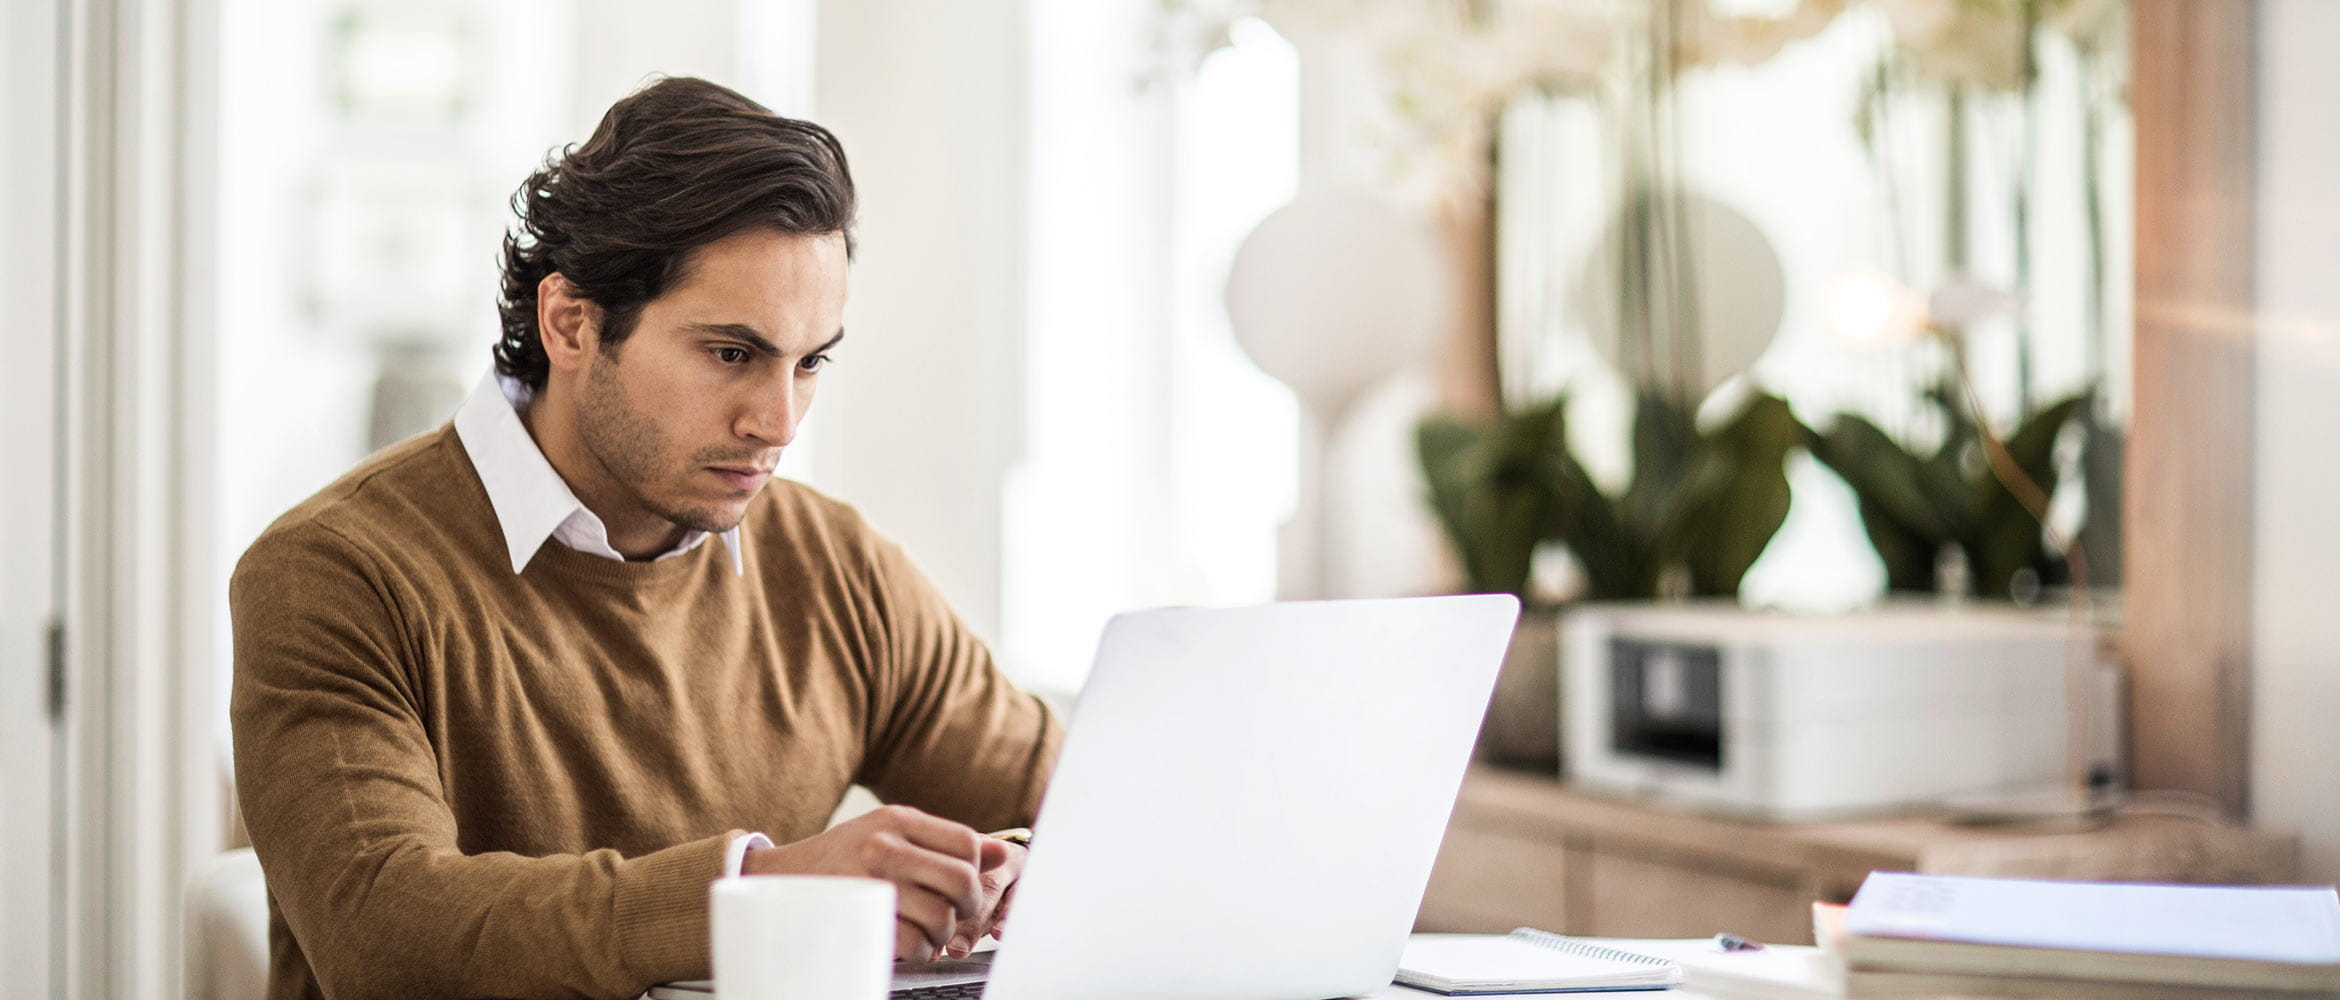 Man looking at laptop in home setting